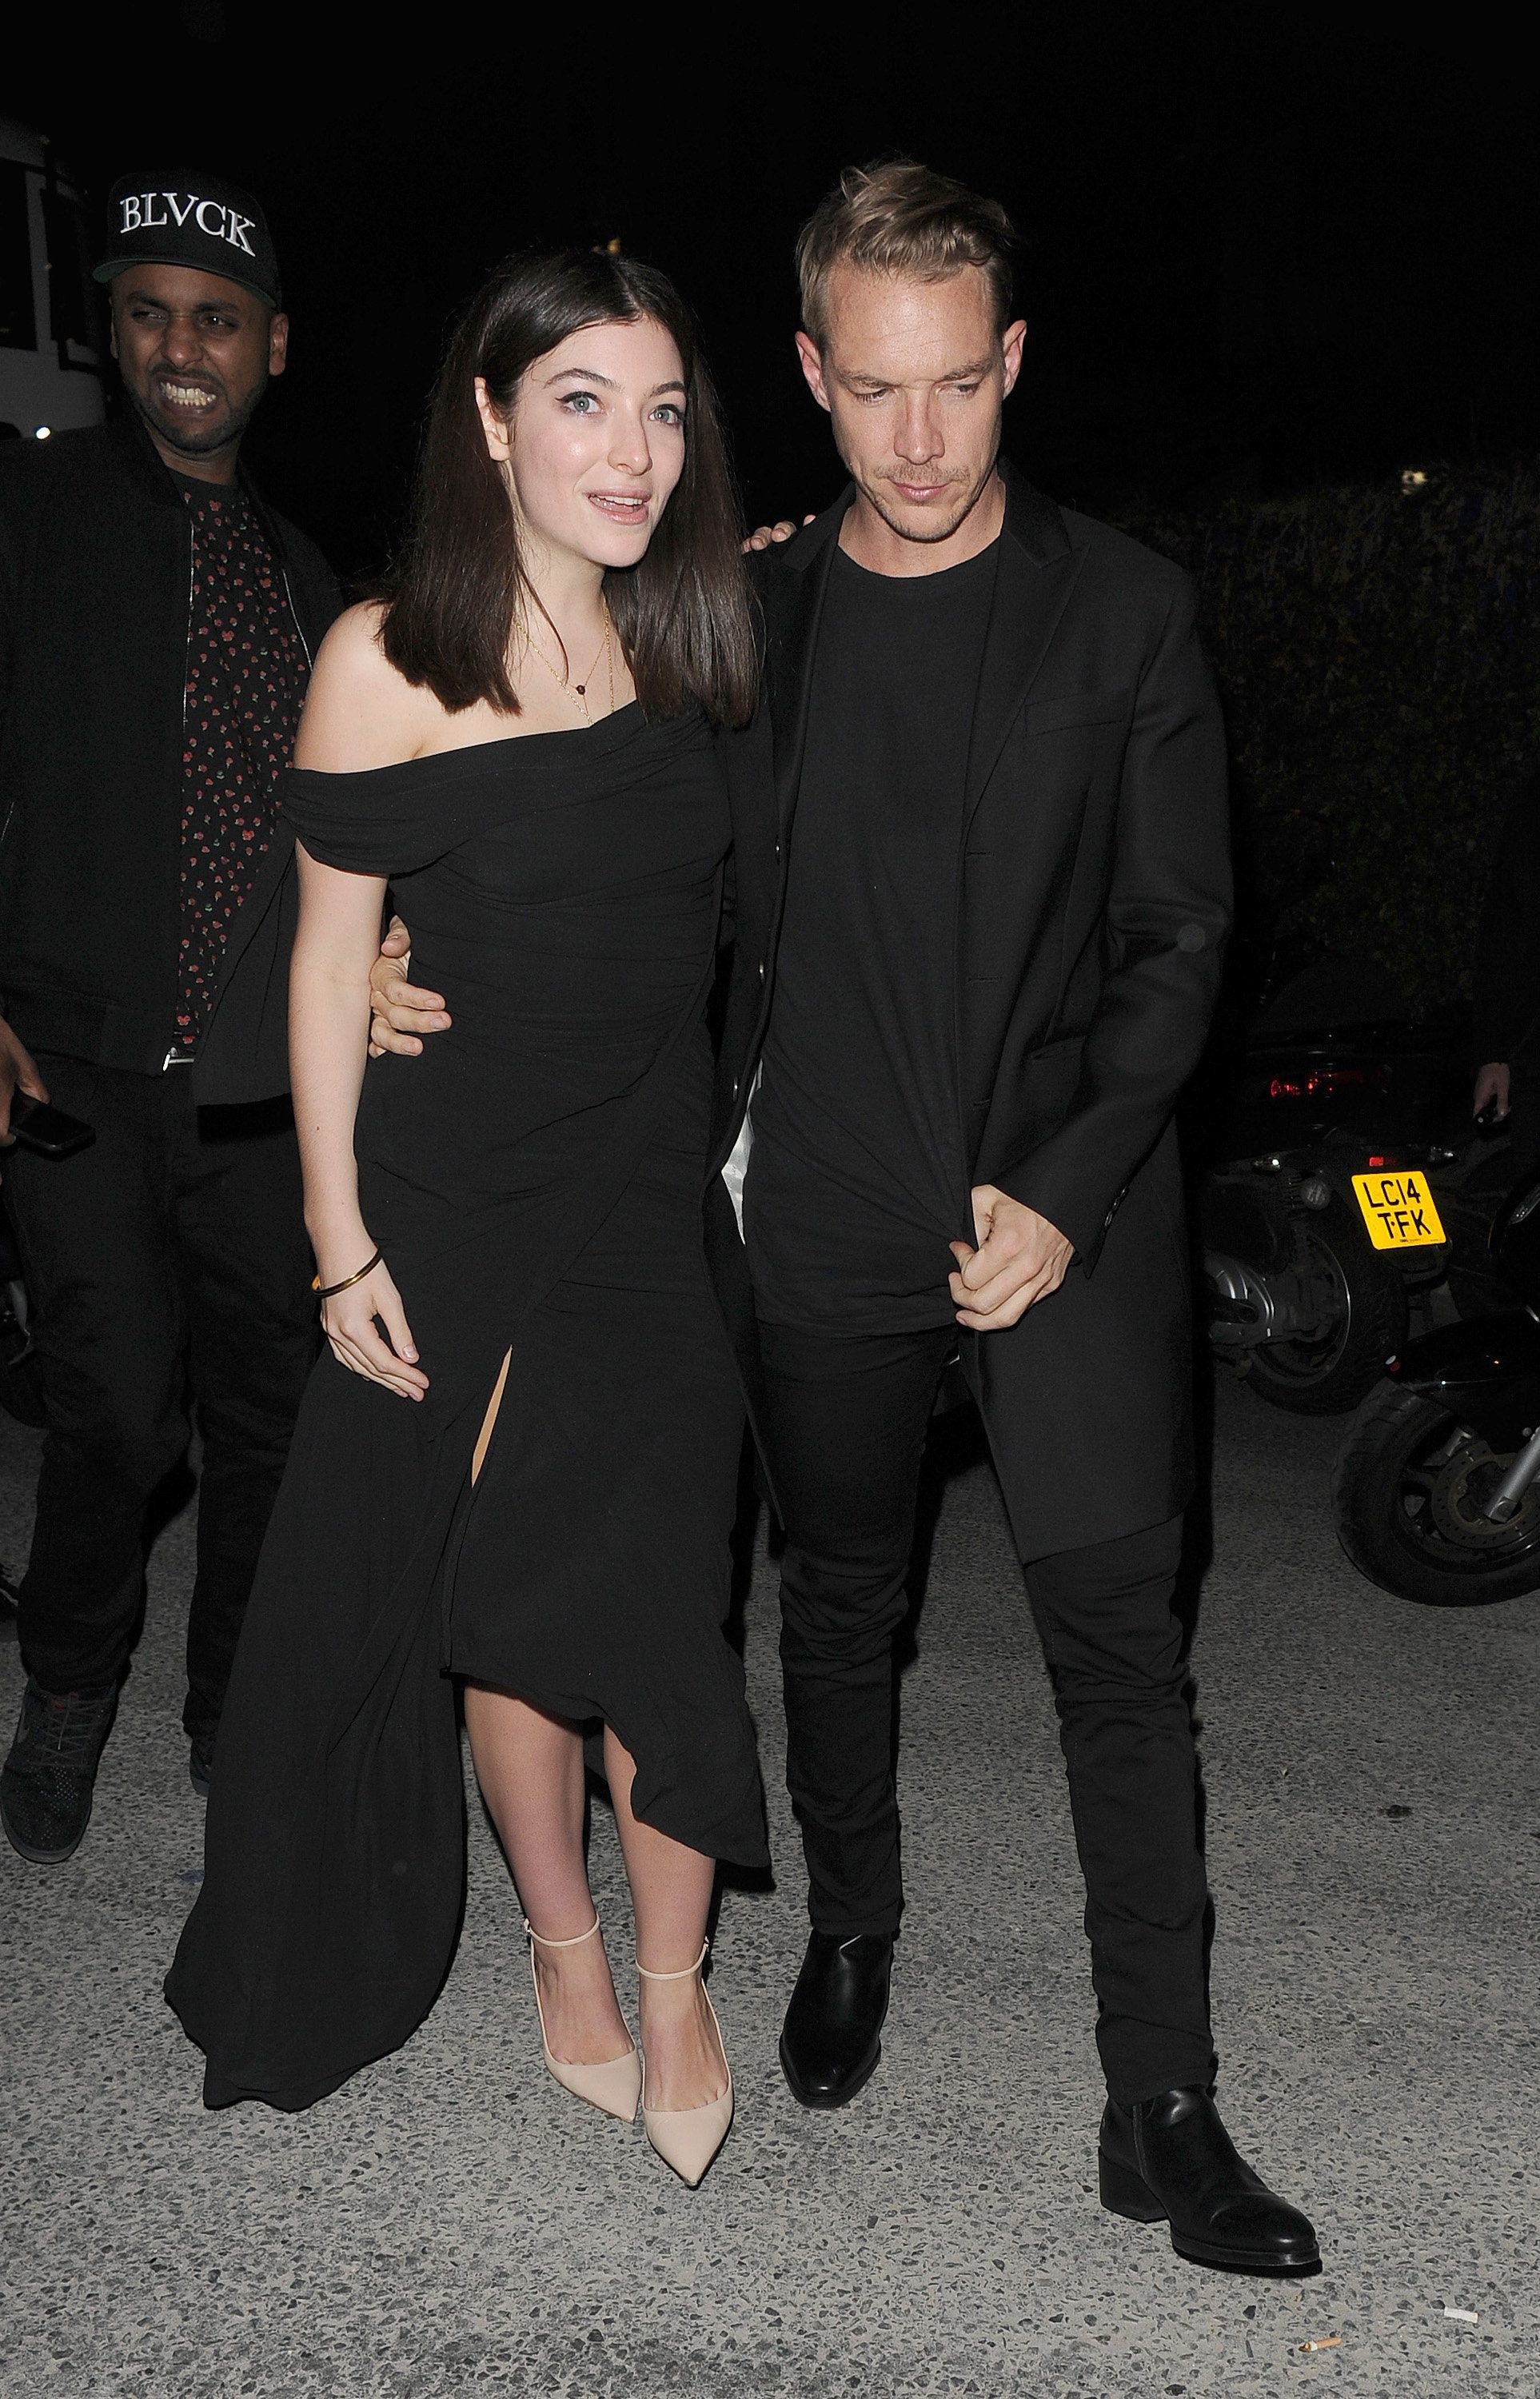 Lorde and Diplo attend a partyat Tape nightclub in Mayfair, following the Brit Awards.